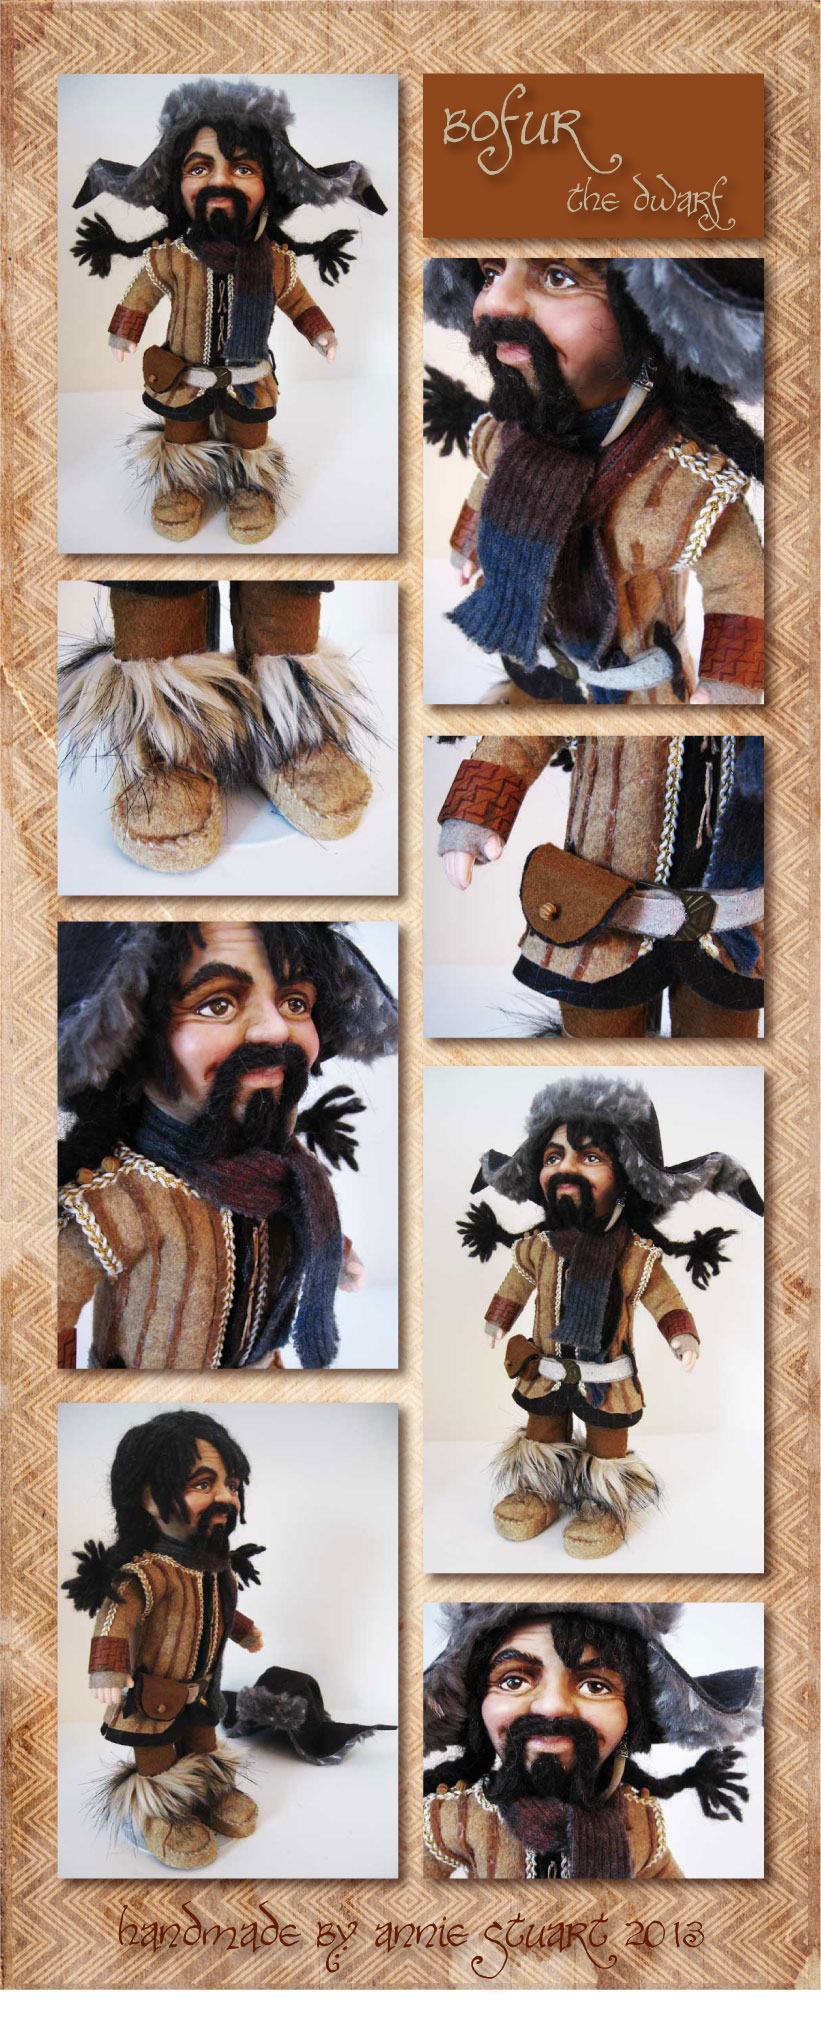 Doll- Bofur the Dwarf by Annie-Stuart